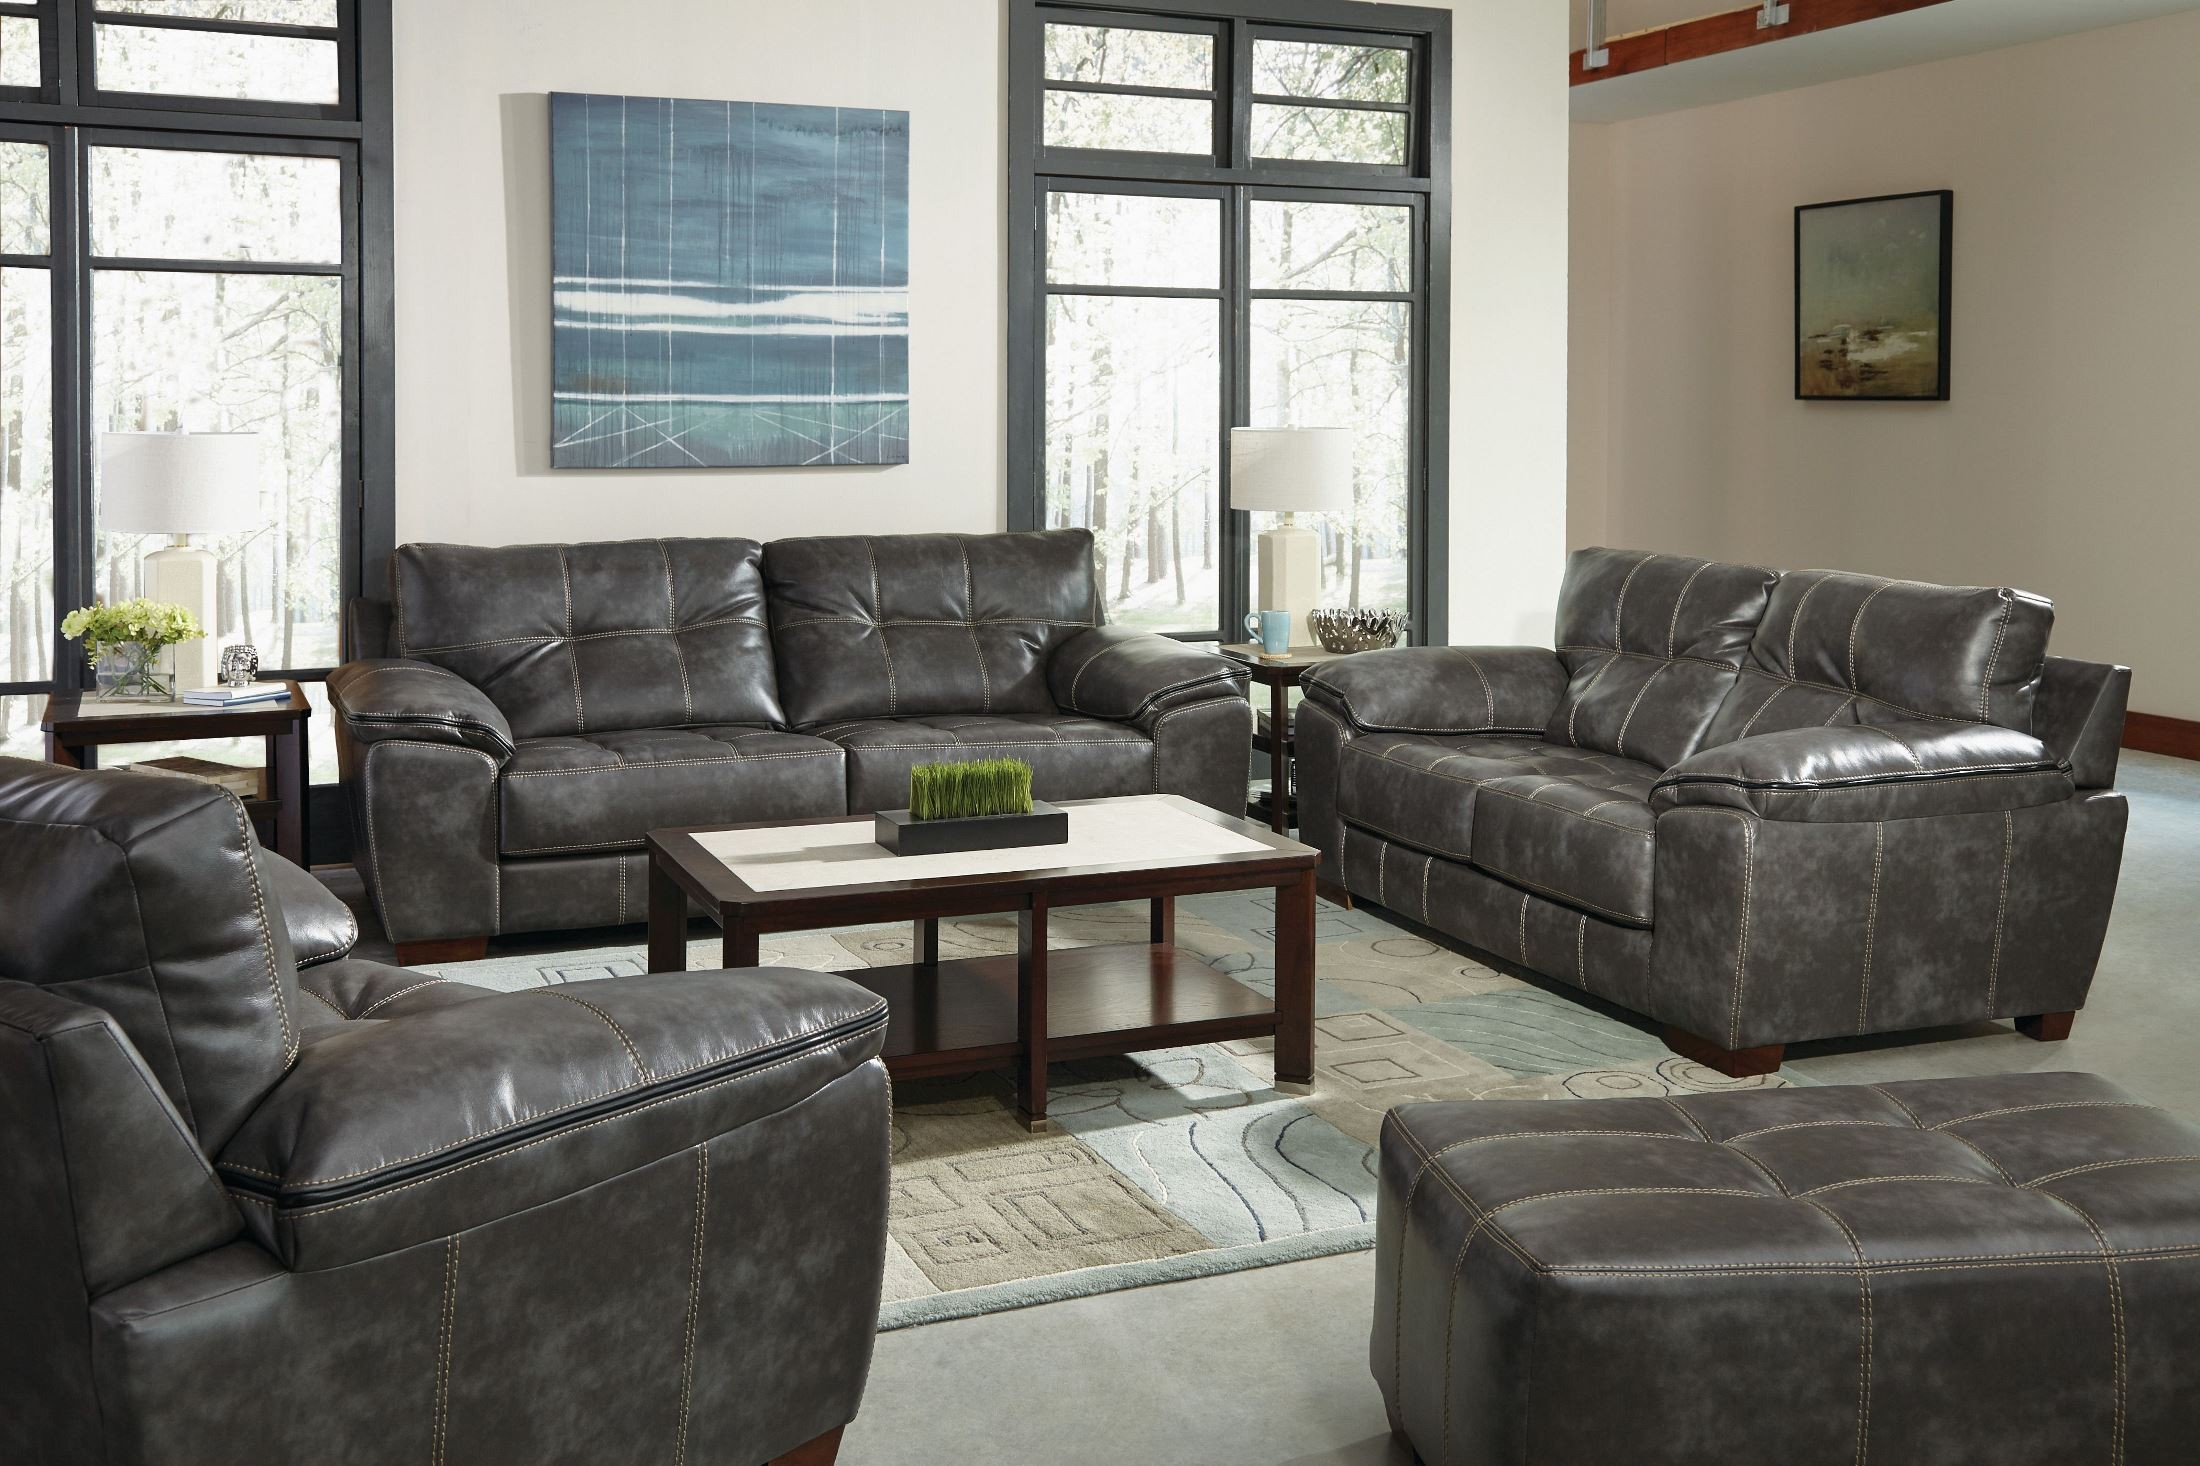 Hudson steel living room set · 2392442